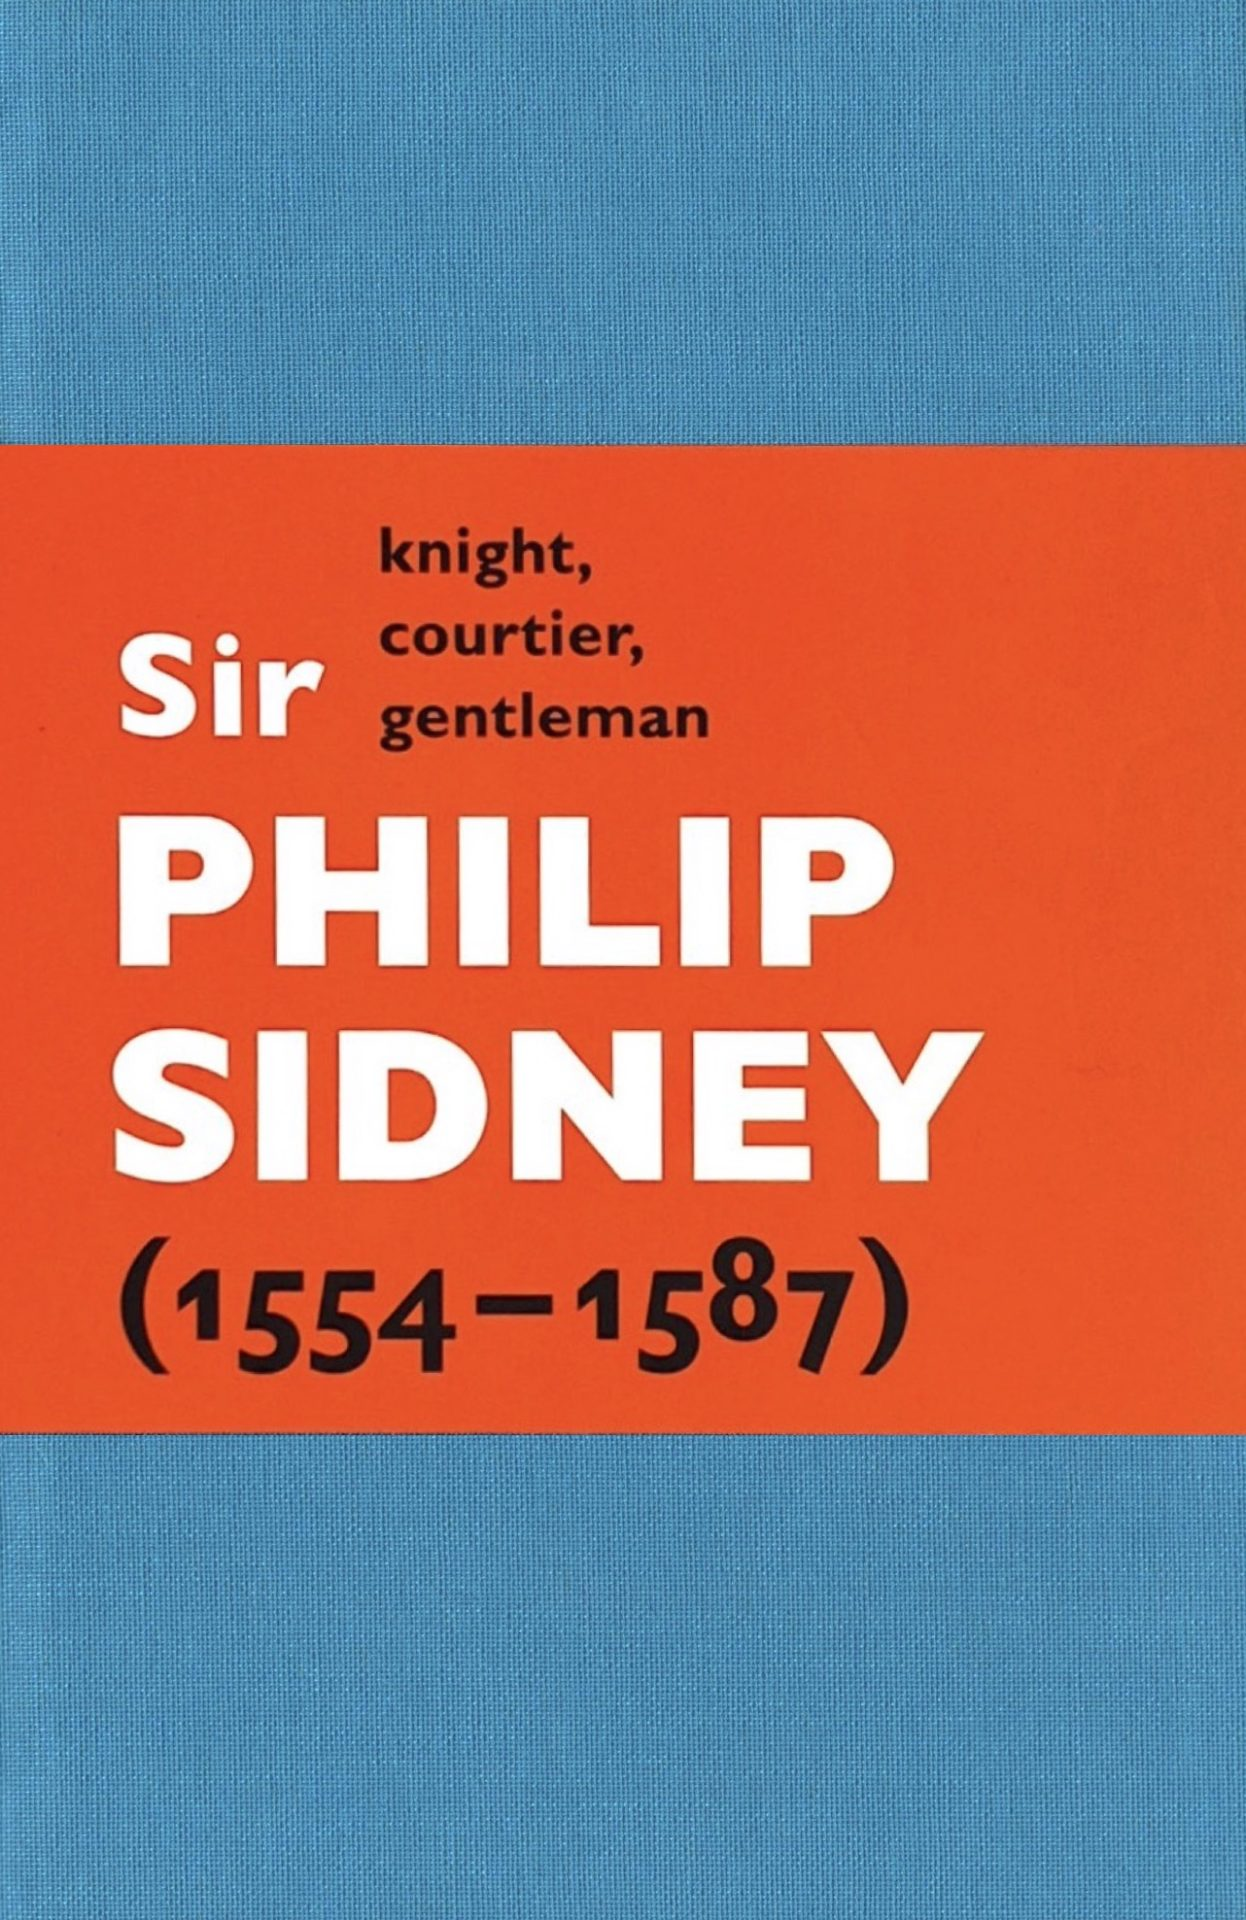 corporate philip sidney